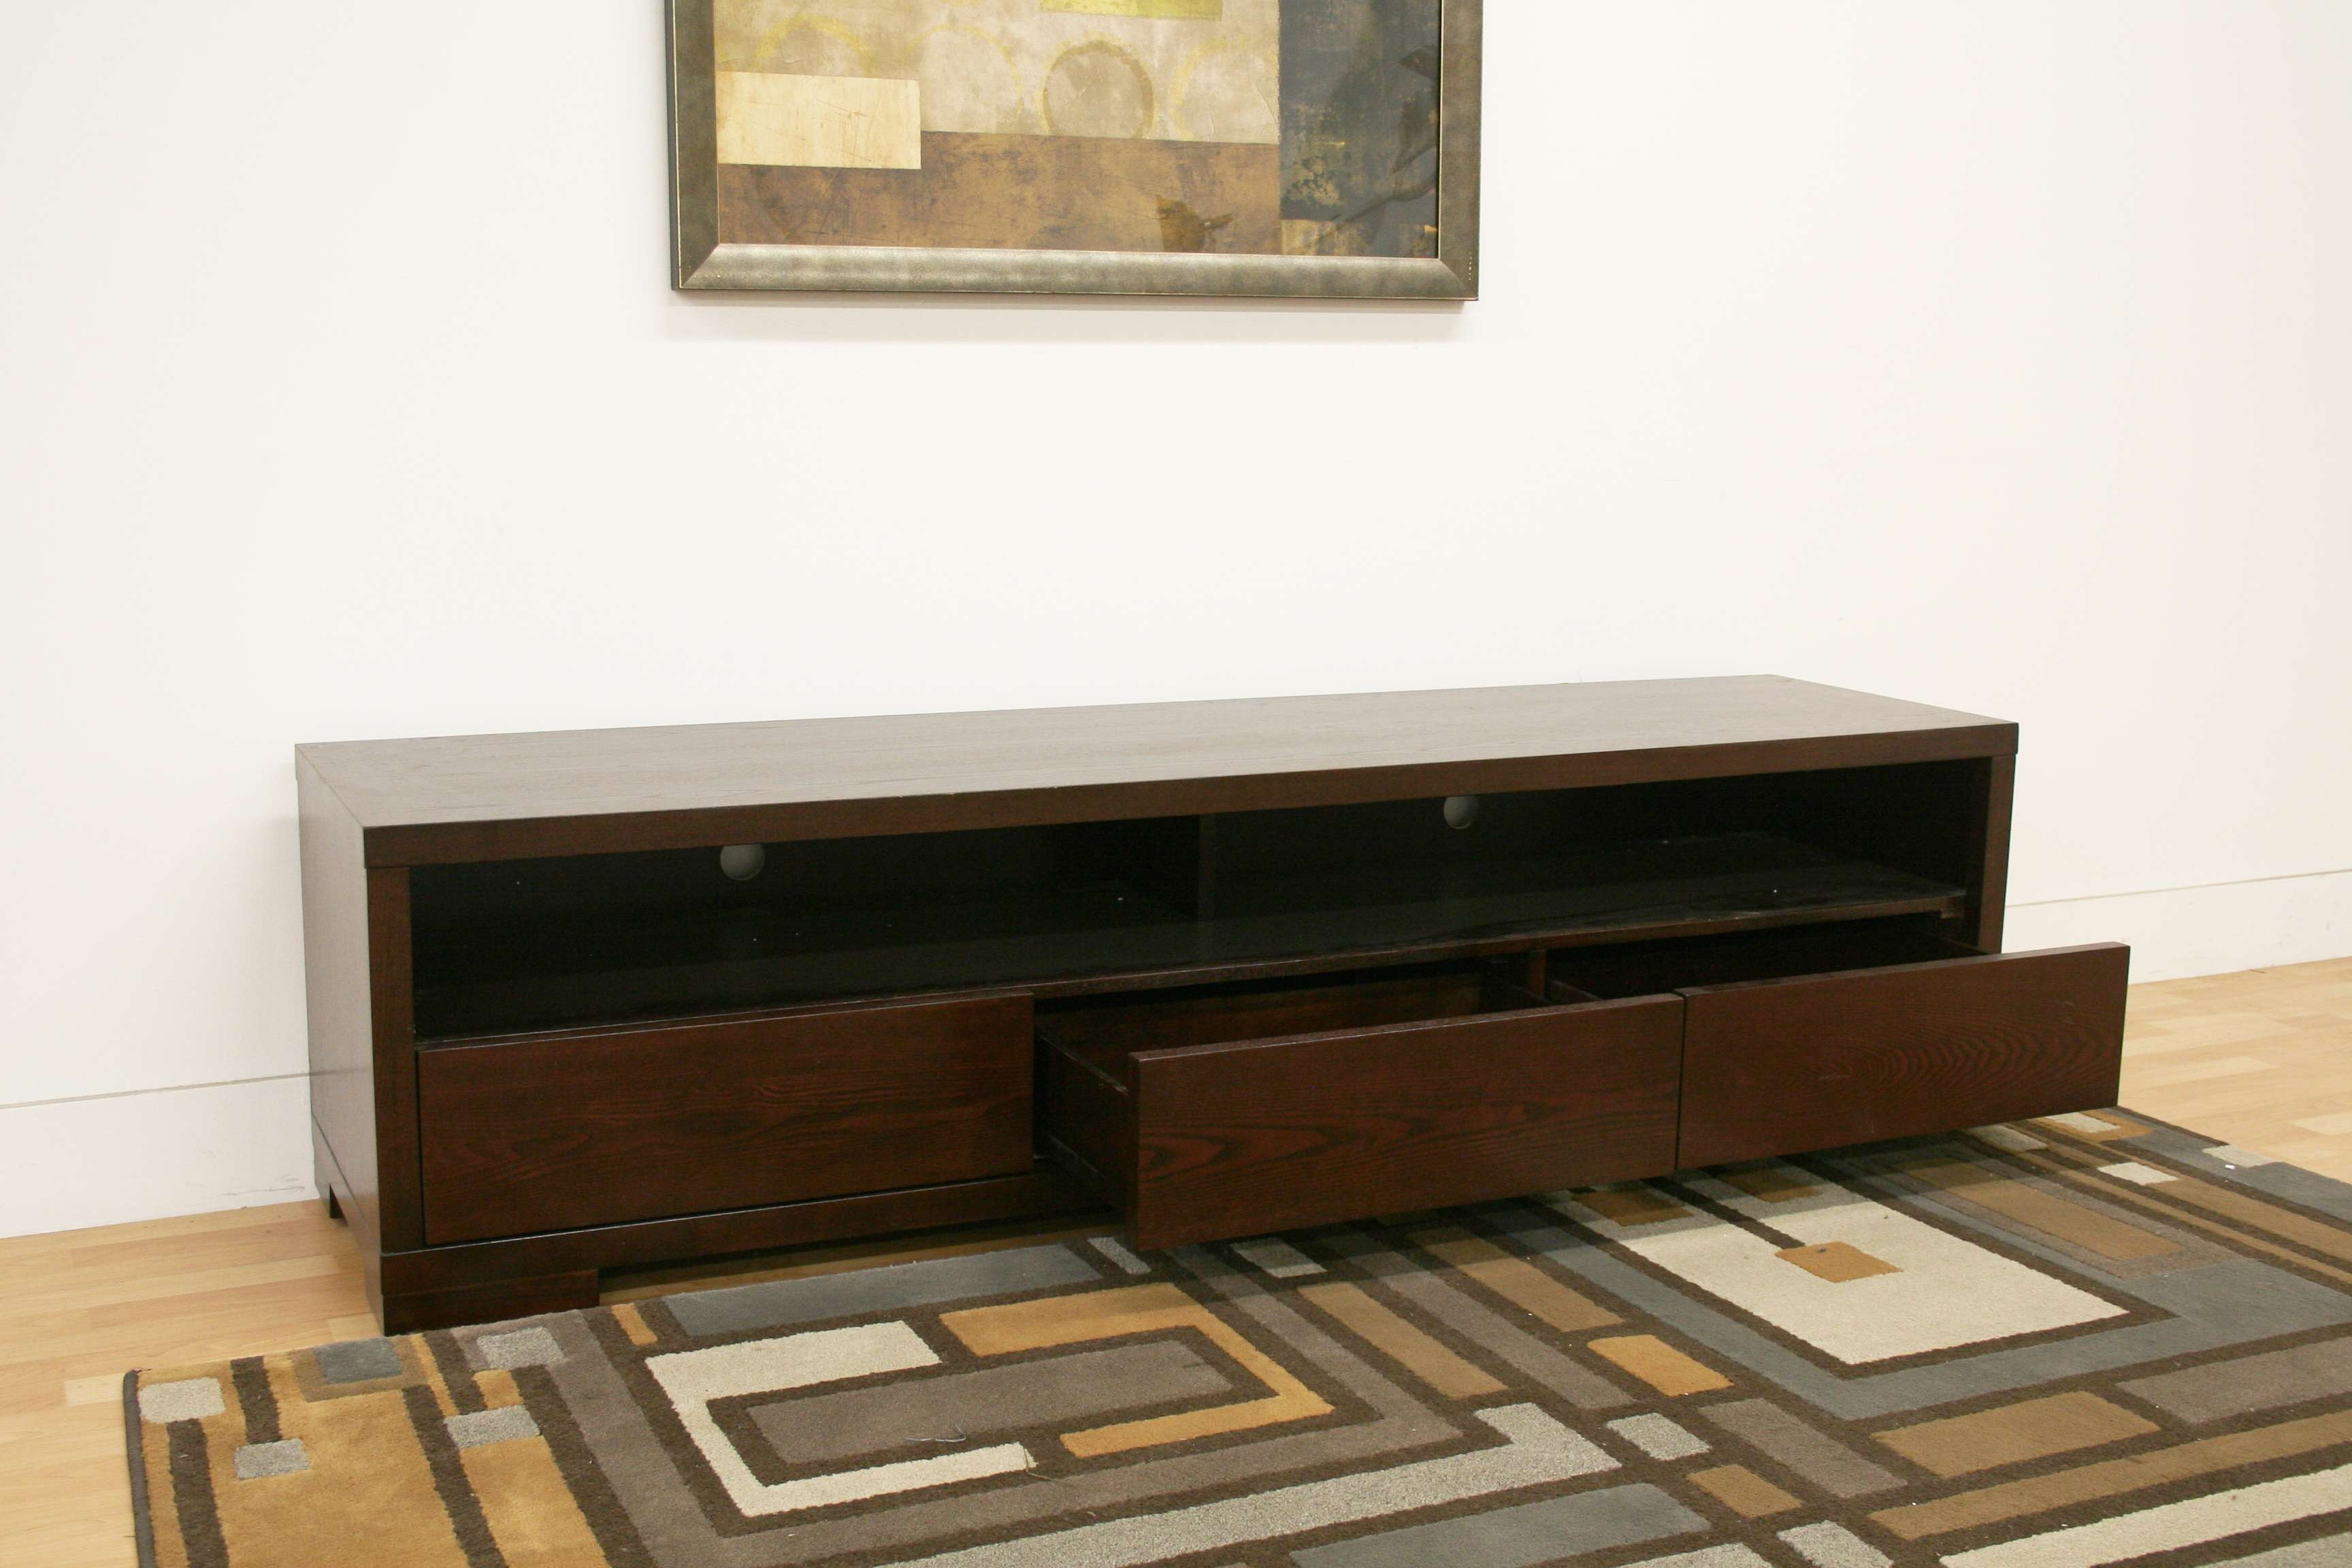 Bedrooms : Fascinating Awesome Plasma Tv Cabinet Designs Home Regarding Dark Wood Tv Cabinets (View 6 of 20)